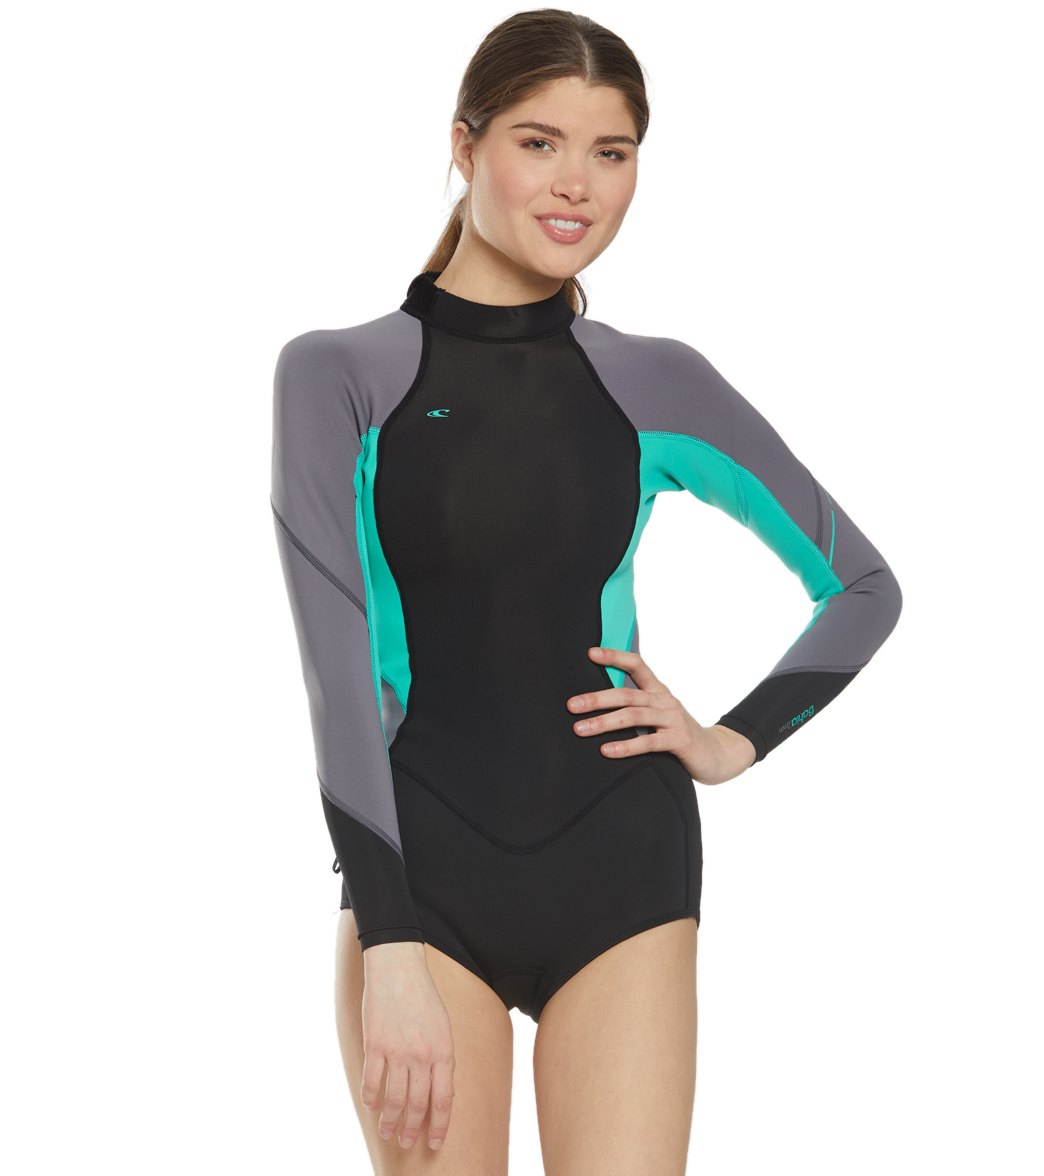 4a2b2caff7 O Neill Women s 2 1MM Bahia Long Sleeve Springsuit Wetsuit at ...